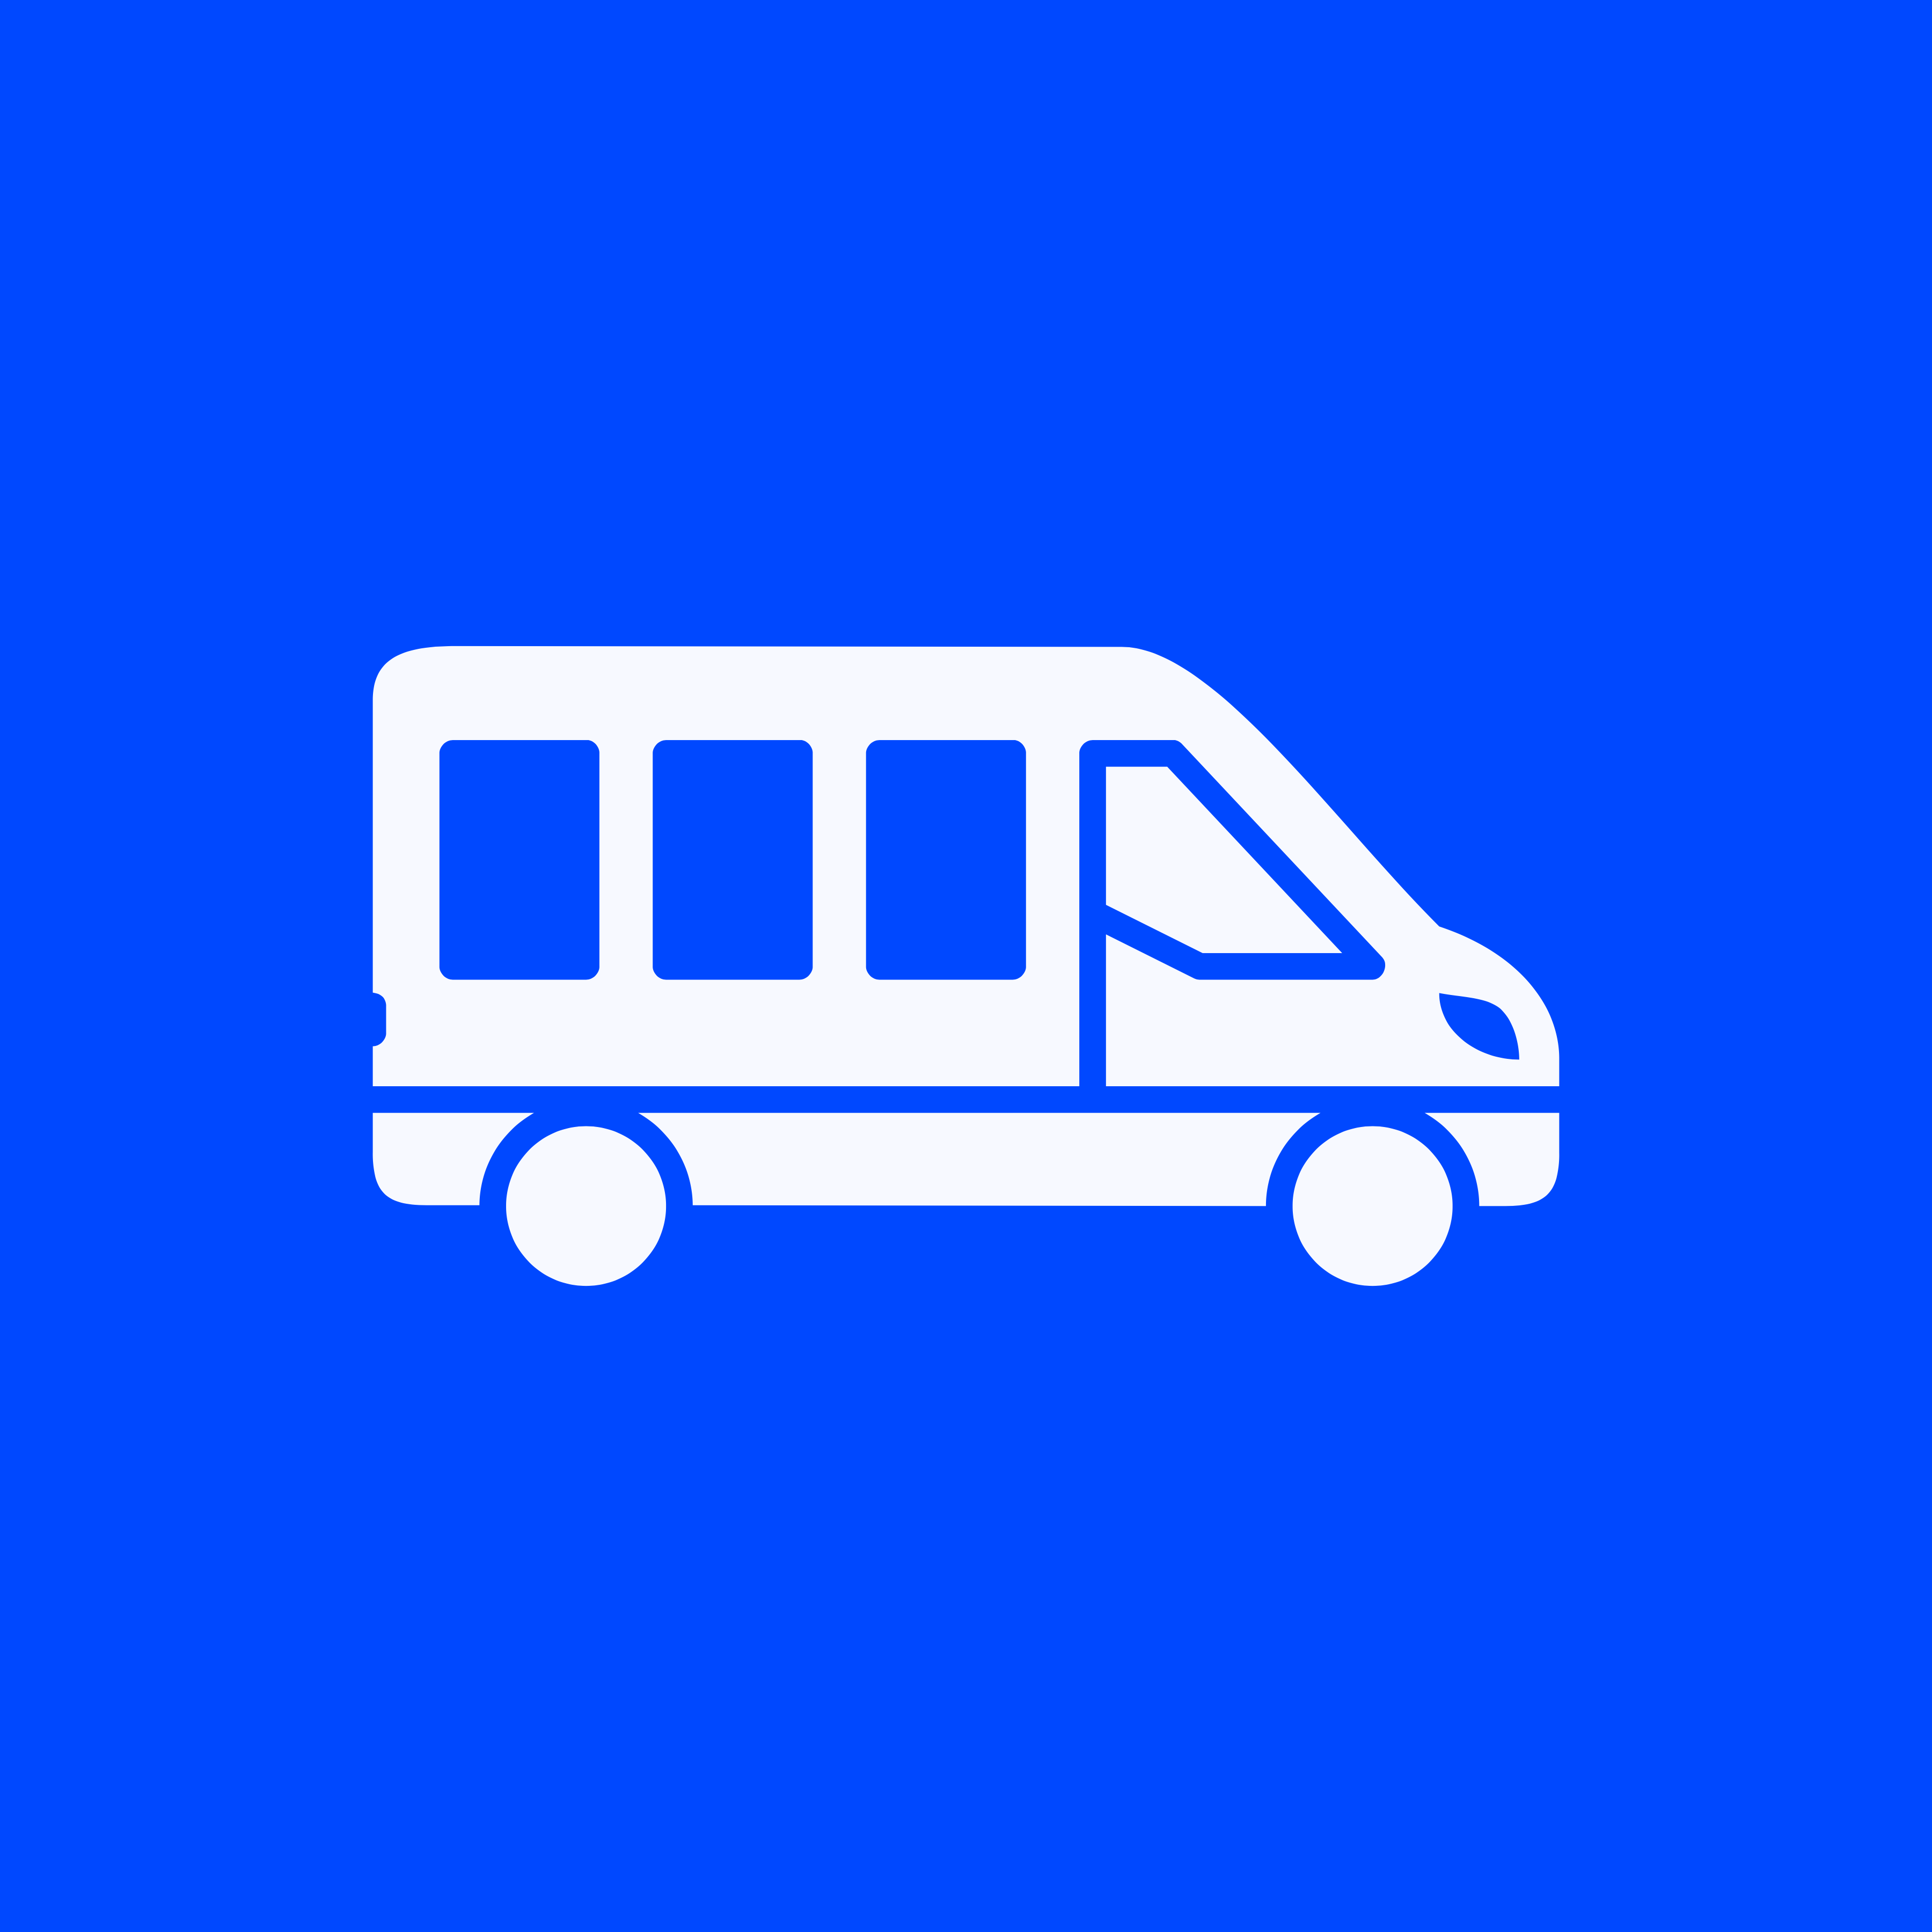 A blue and White van logo